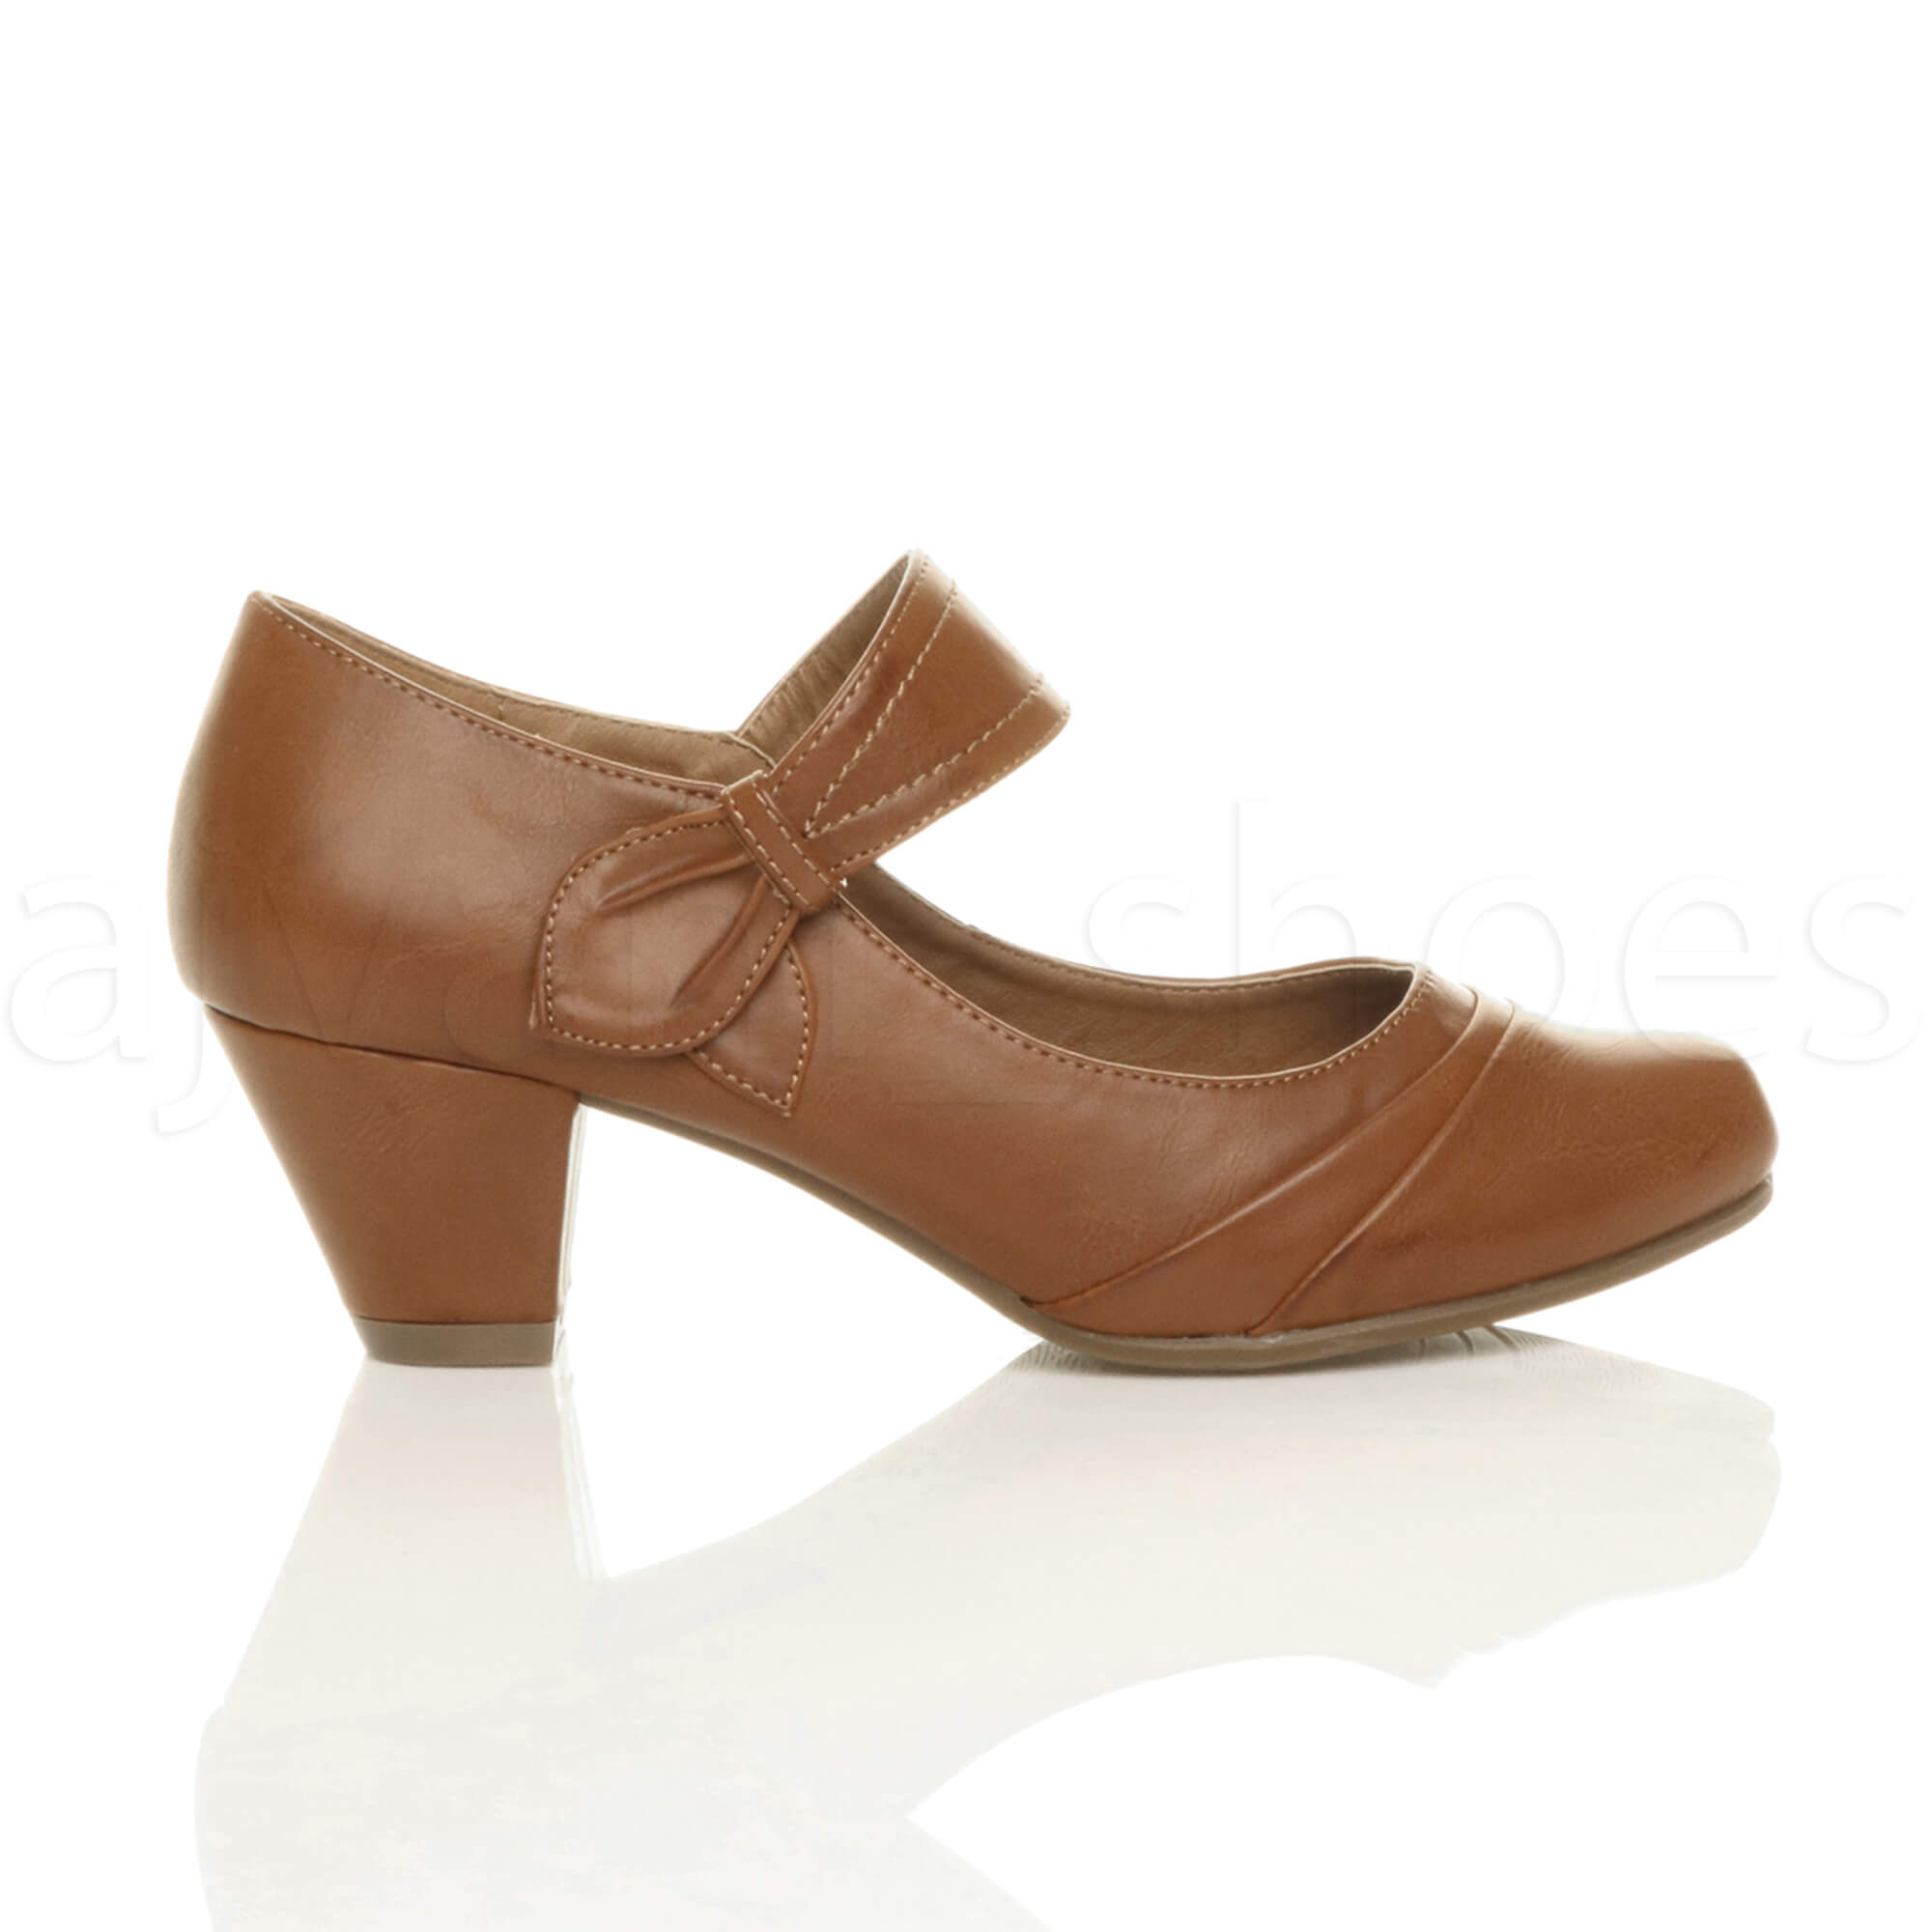 WOMENS-LADIES-MID-HEEL-MARY-JANE-STRAP-SMART-WORK-COMFORT-COURT-SHOES-SIZE